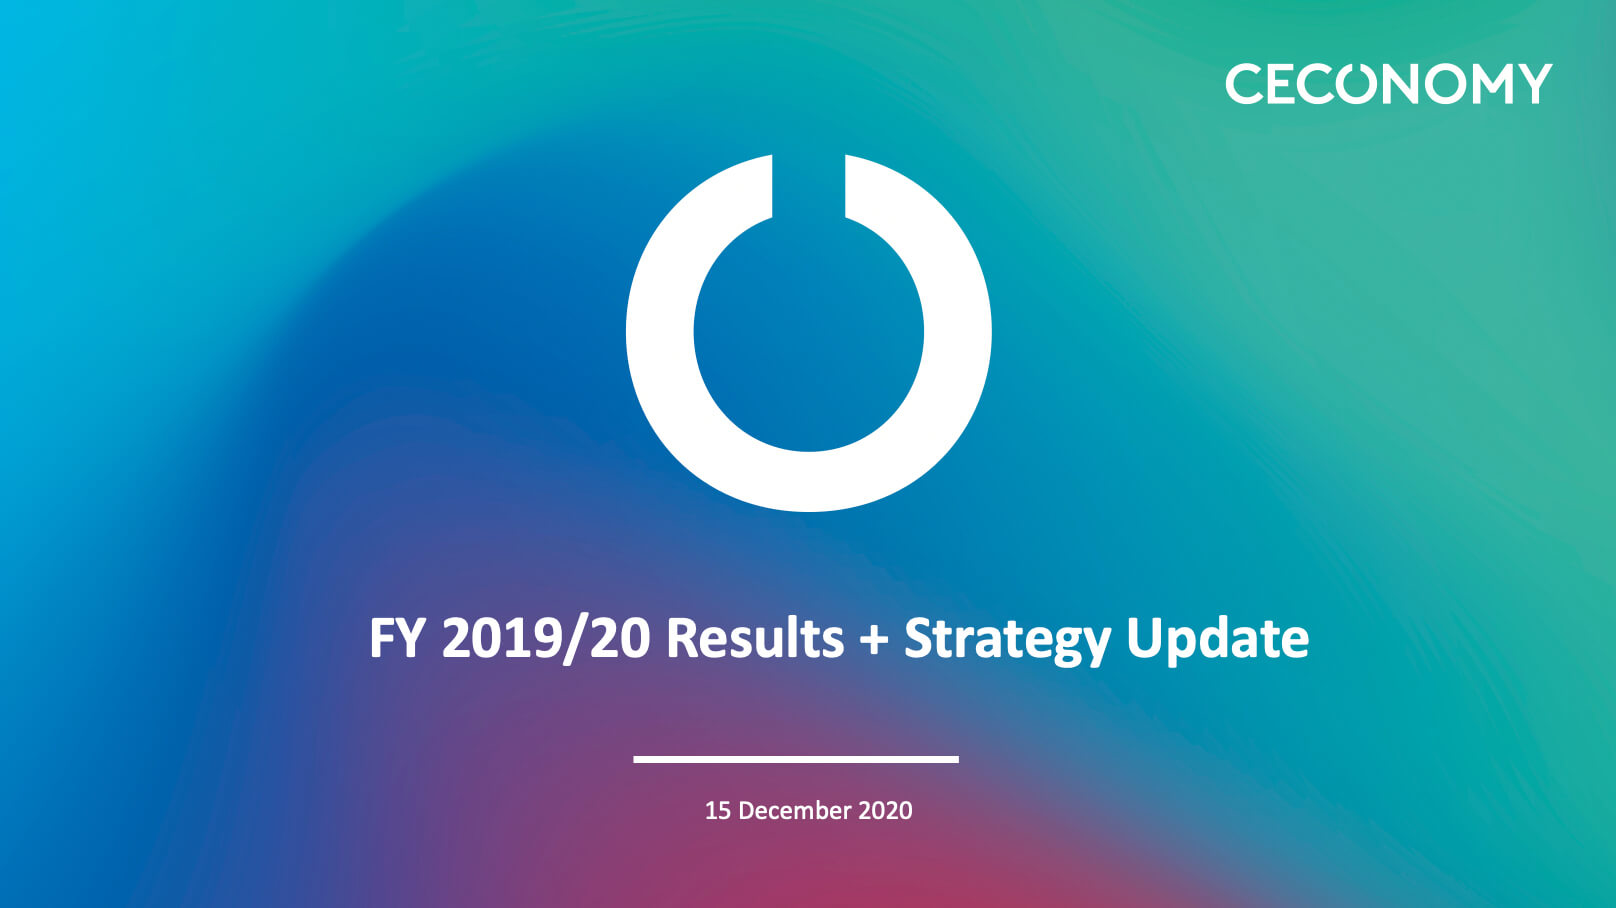 FY 2019/20 Results + Strategy Update